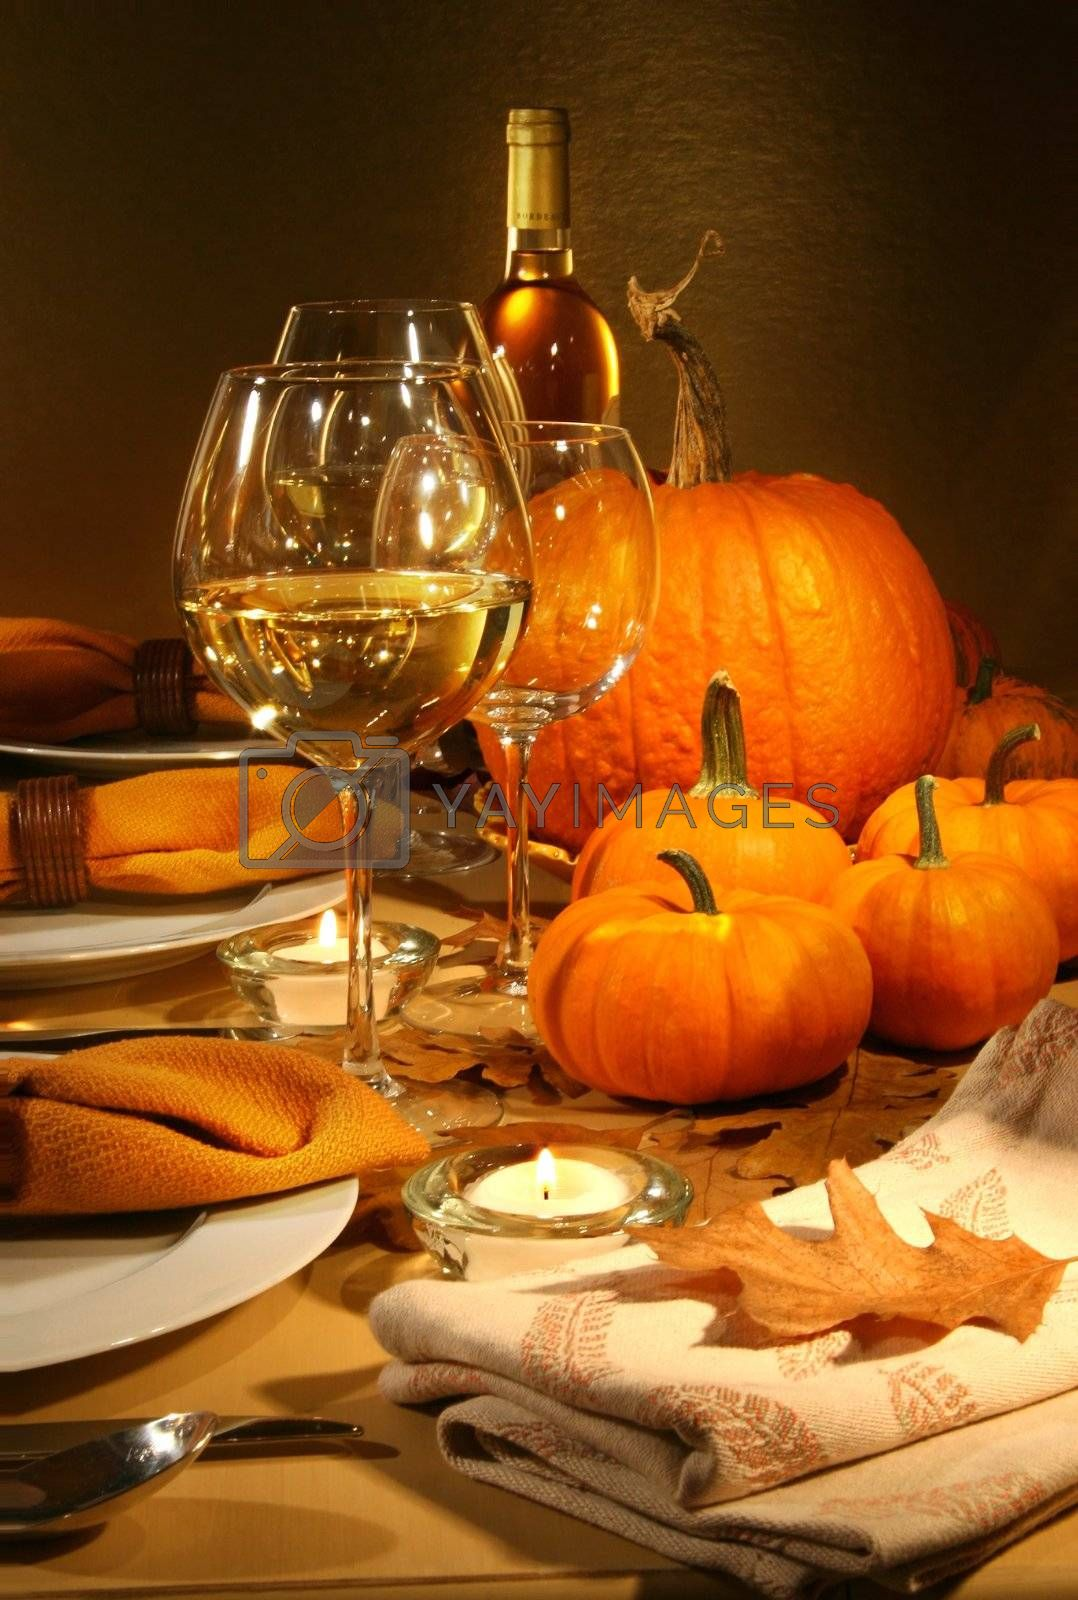 Dinner settings with wine for Thanksgiving